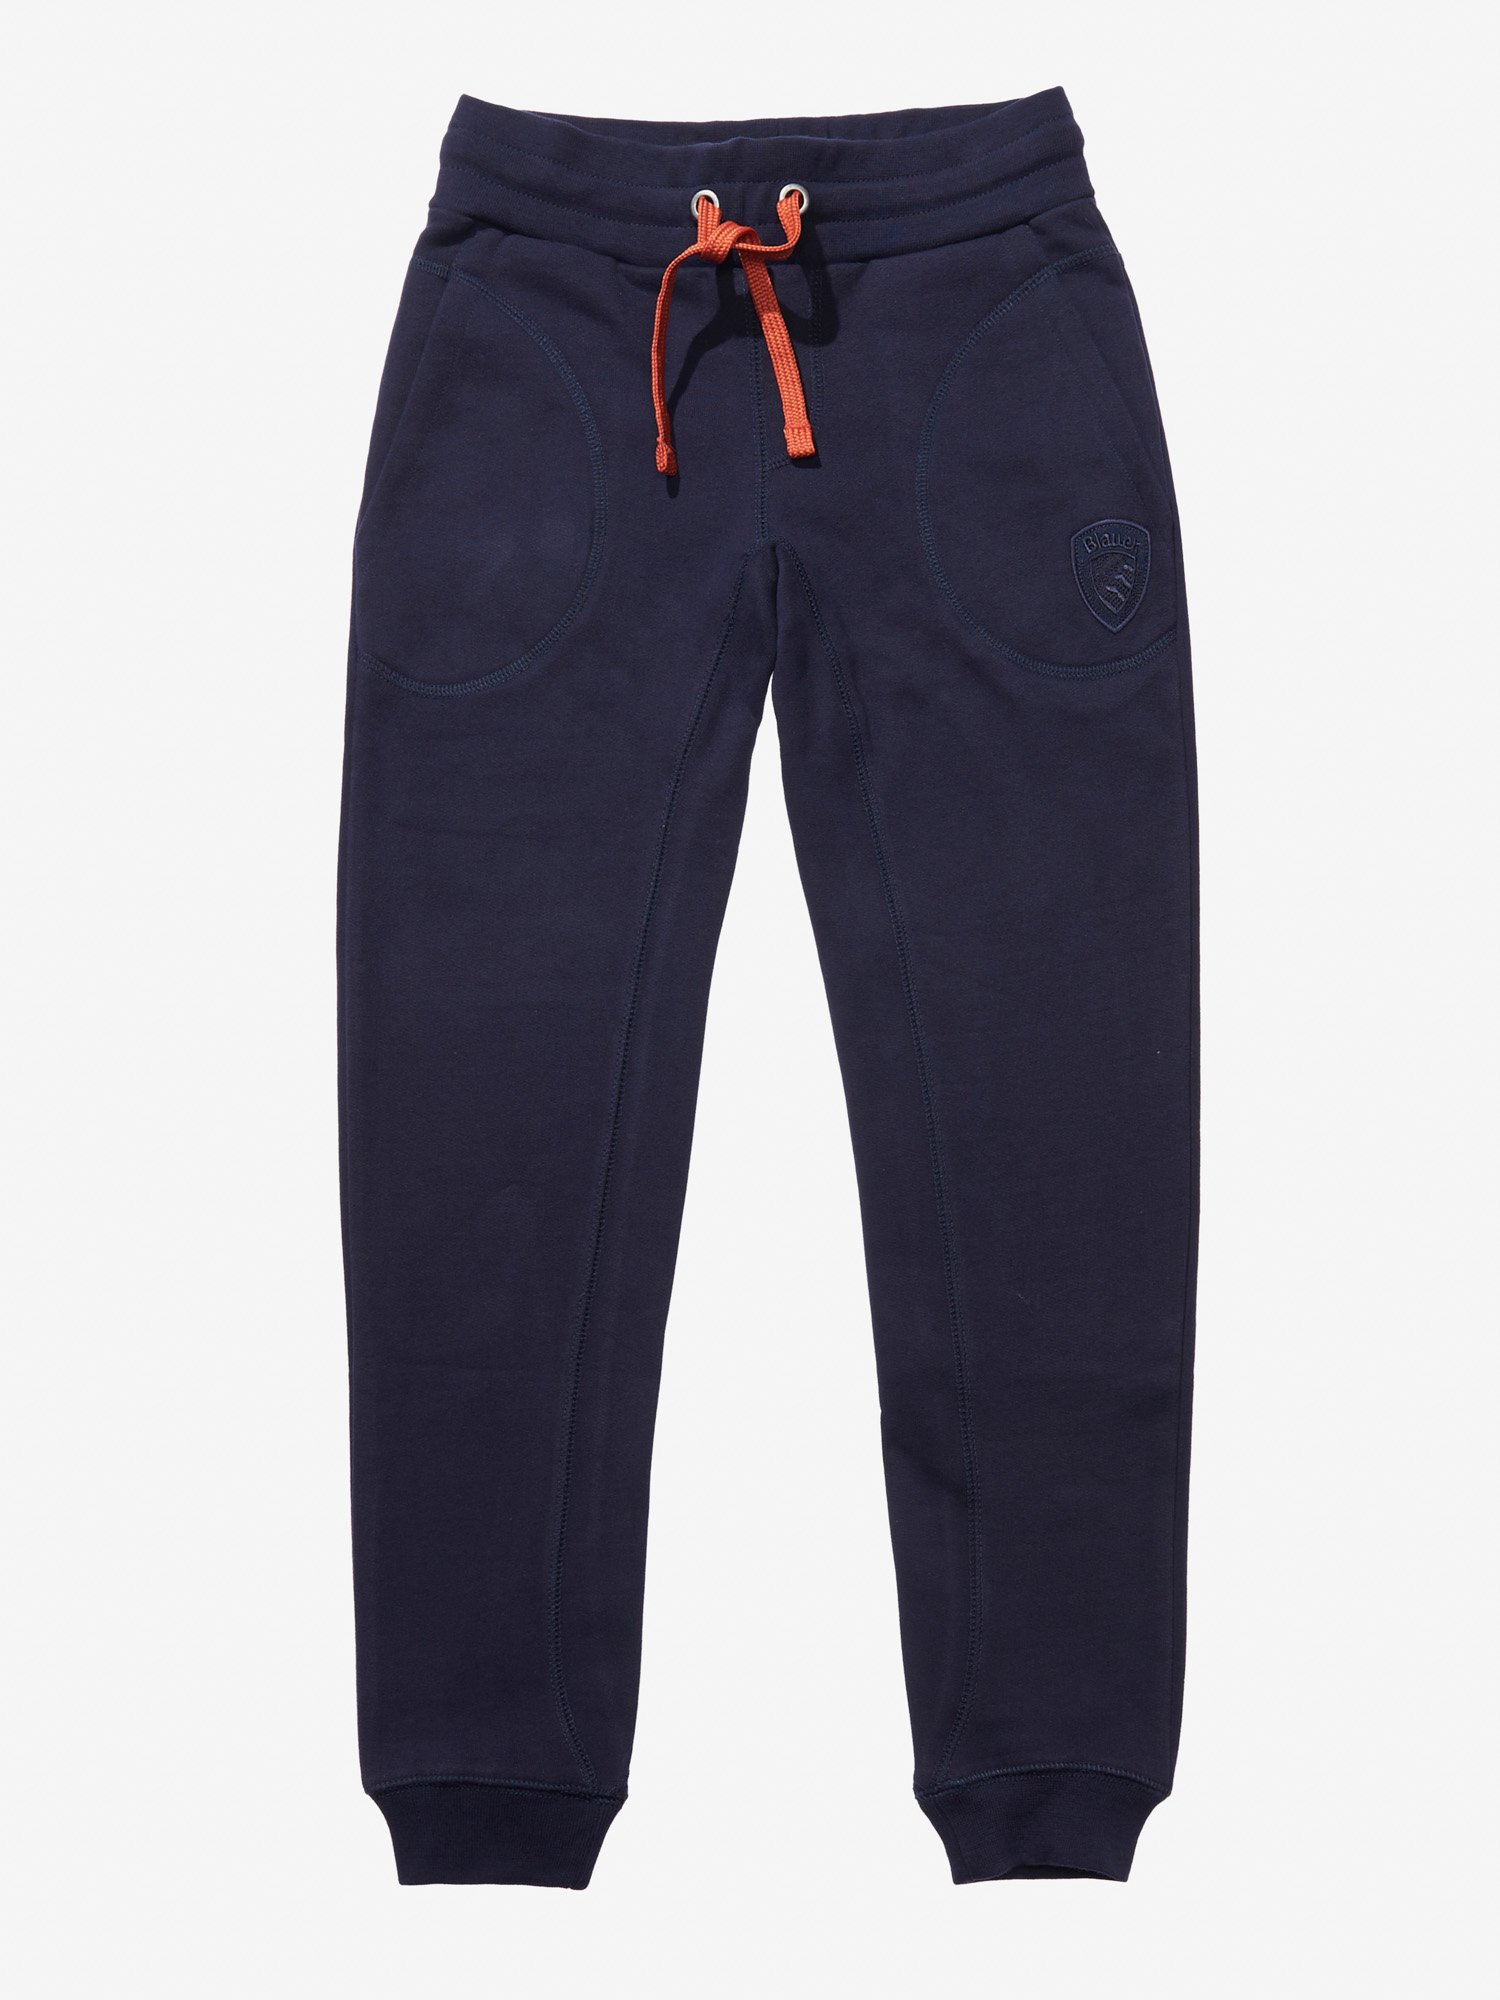 Blauer - SWEATSHIRT-HOSE - Dark Night Blue - Blauer